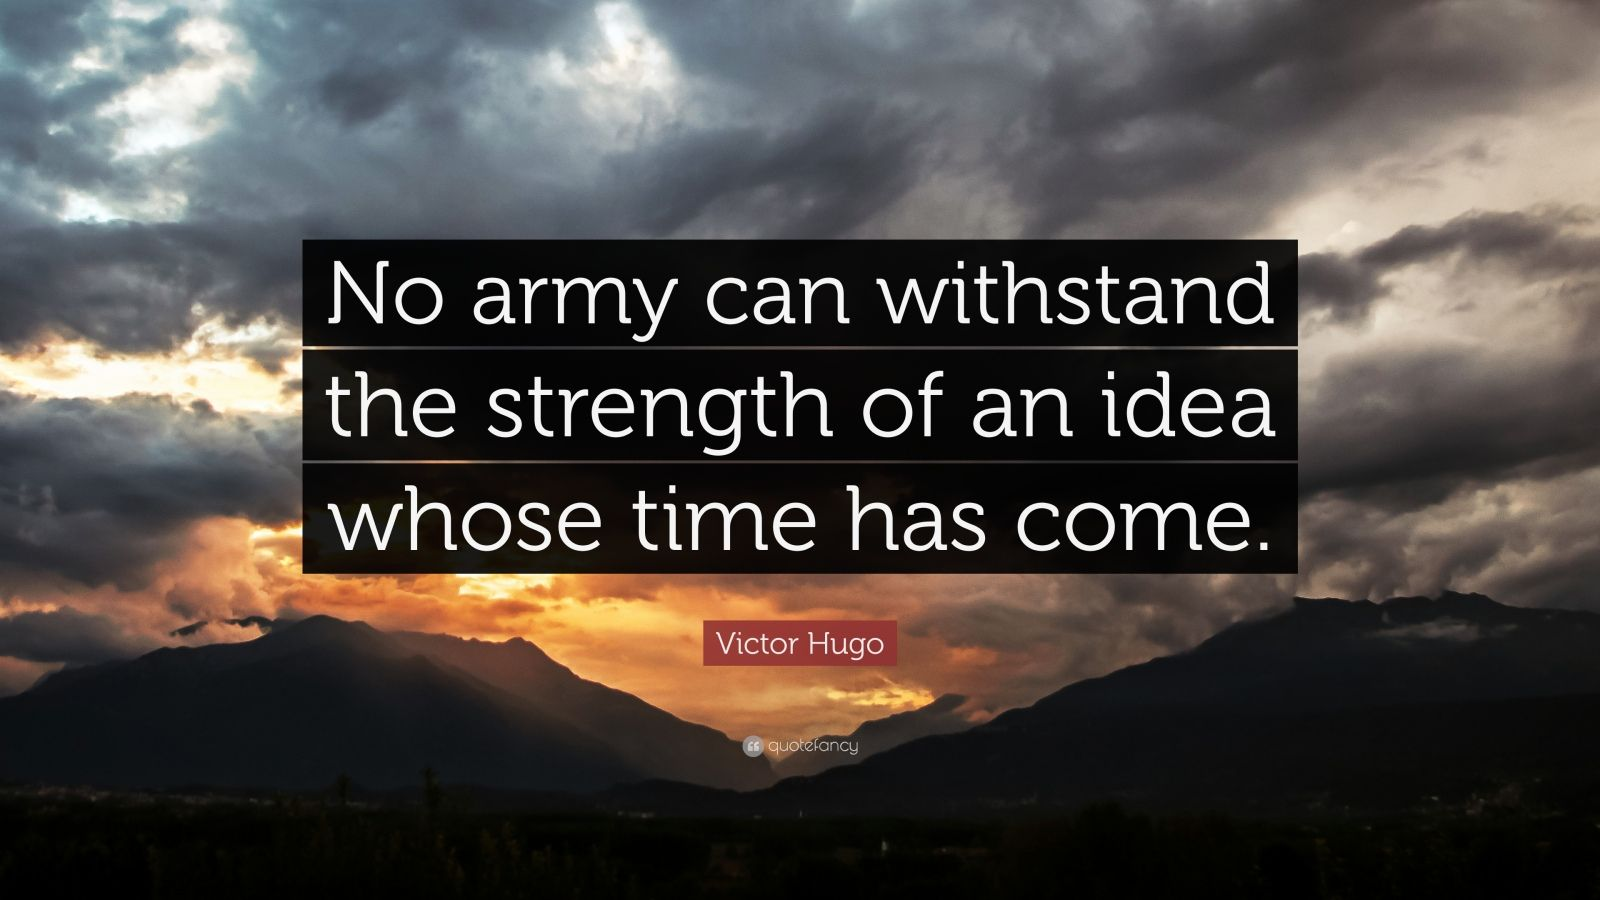 Best English Quotes Wallpaper Victor Hugo Quote No Army Can Withstand The Strength Of